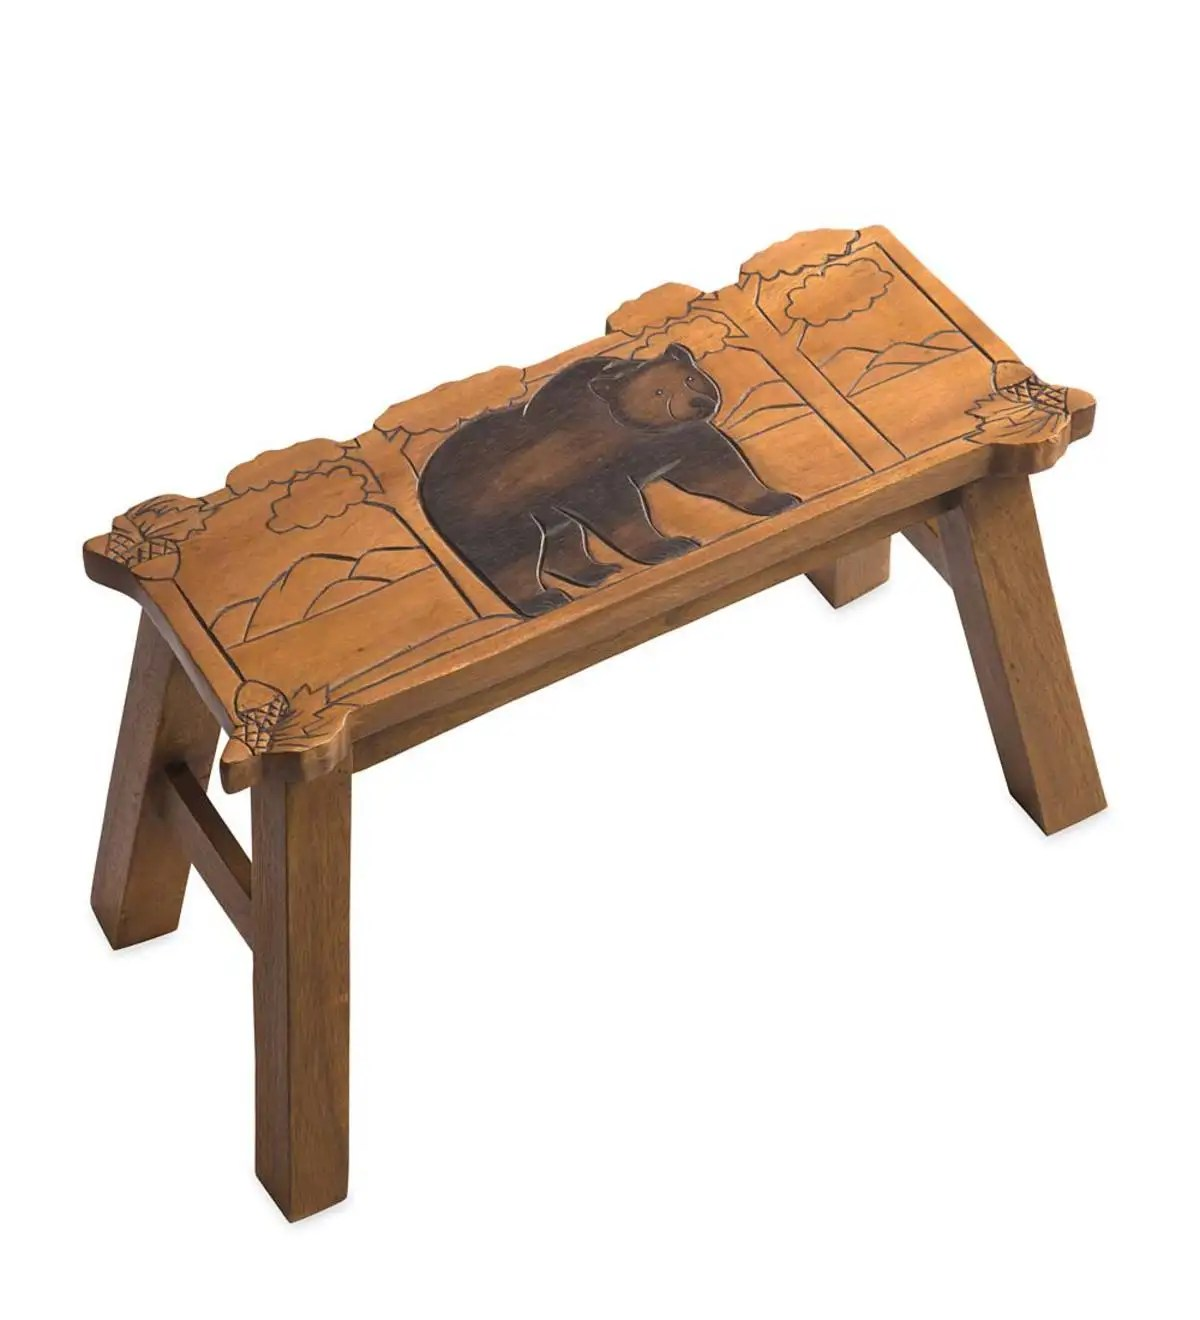 carved wood bear bench